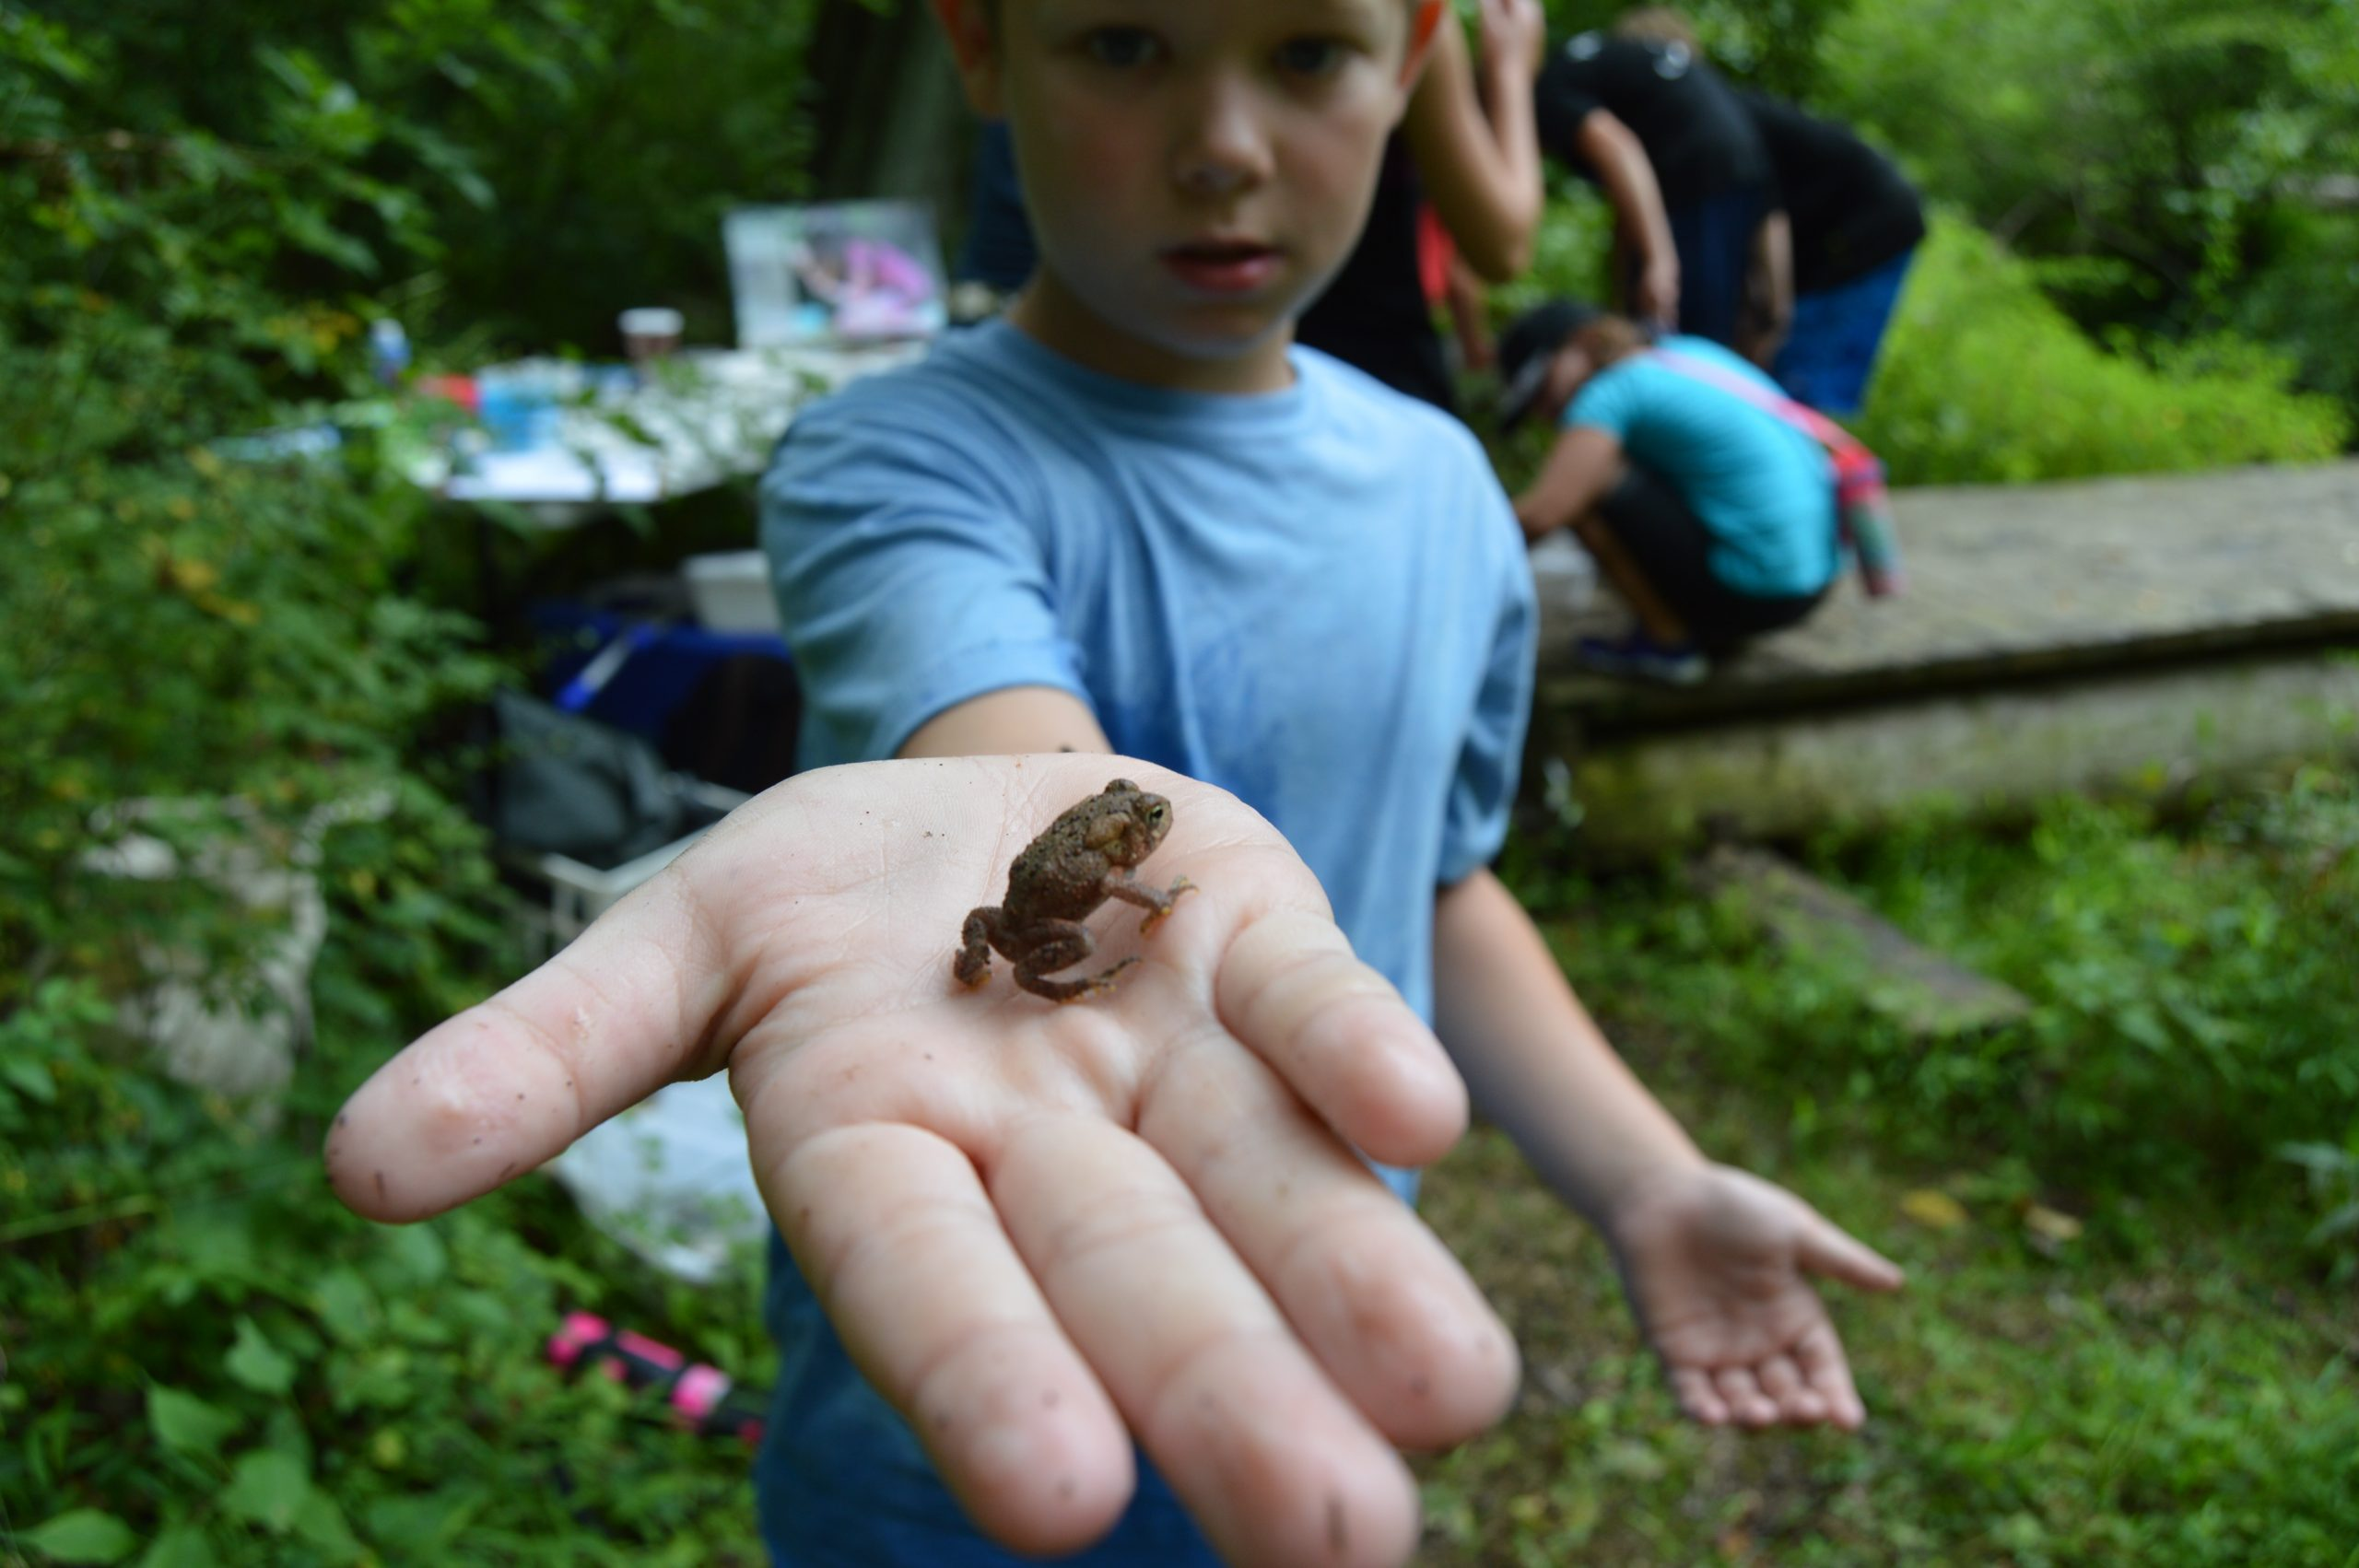 A Nature Keeper shows off a baby toad he found at Rushton Woods Preserve.  Photo by Blake Goll/Staff